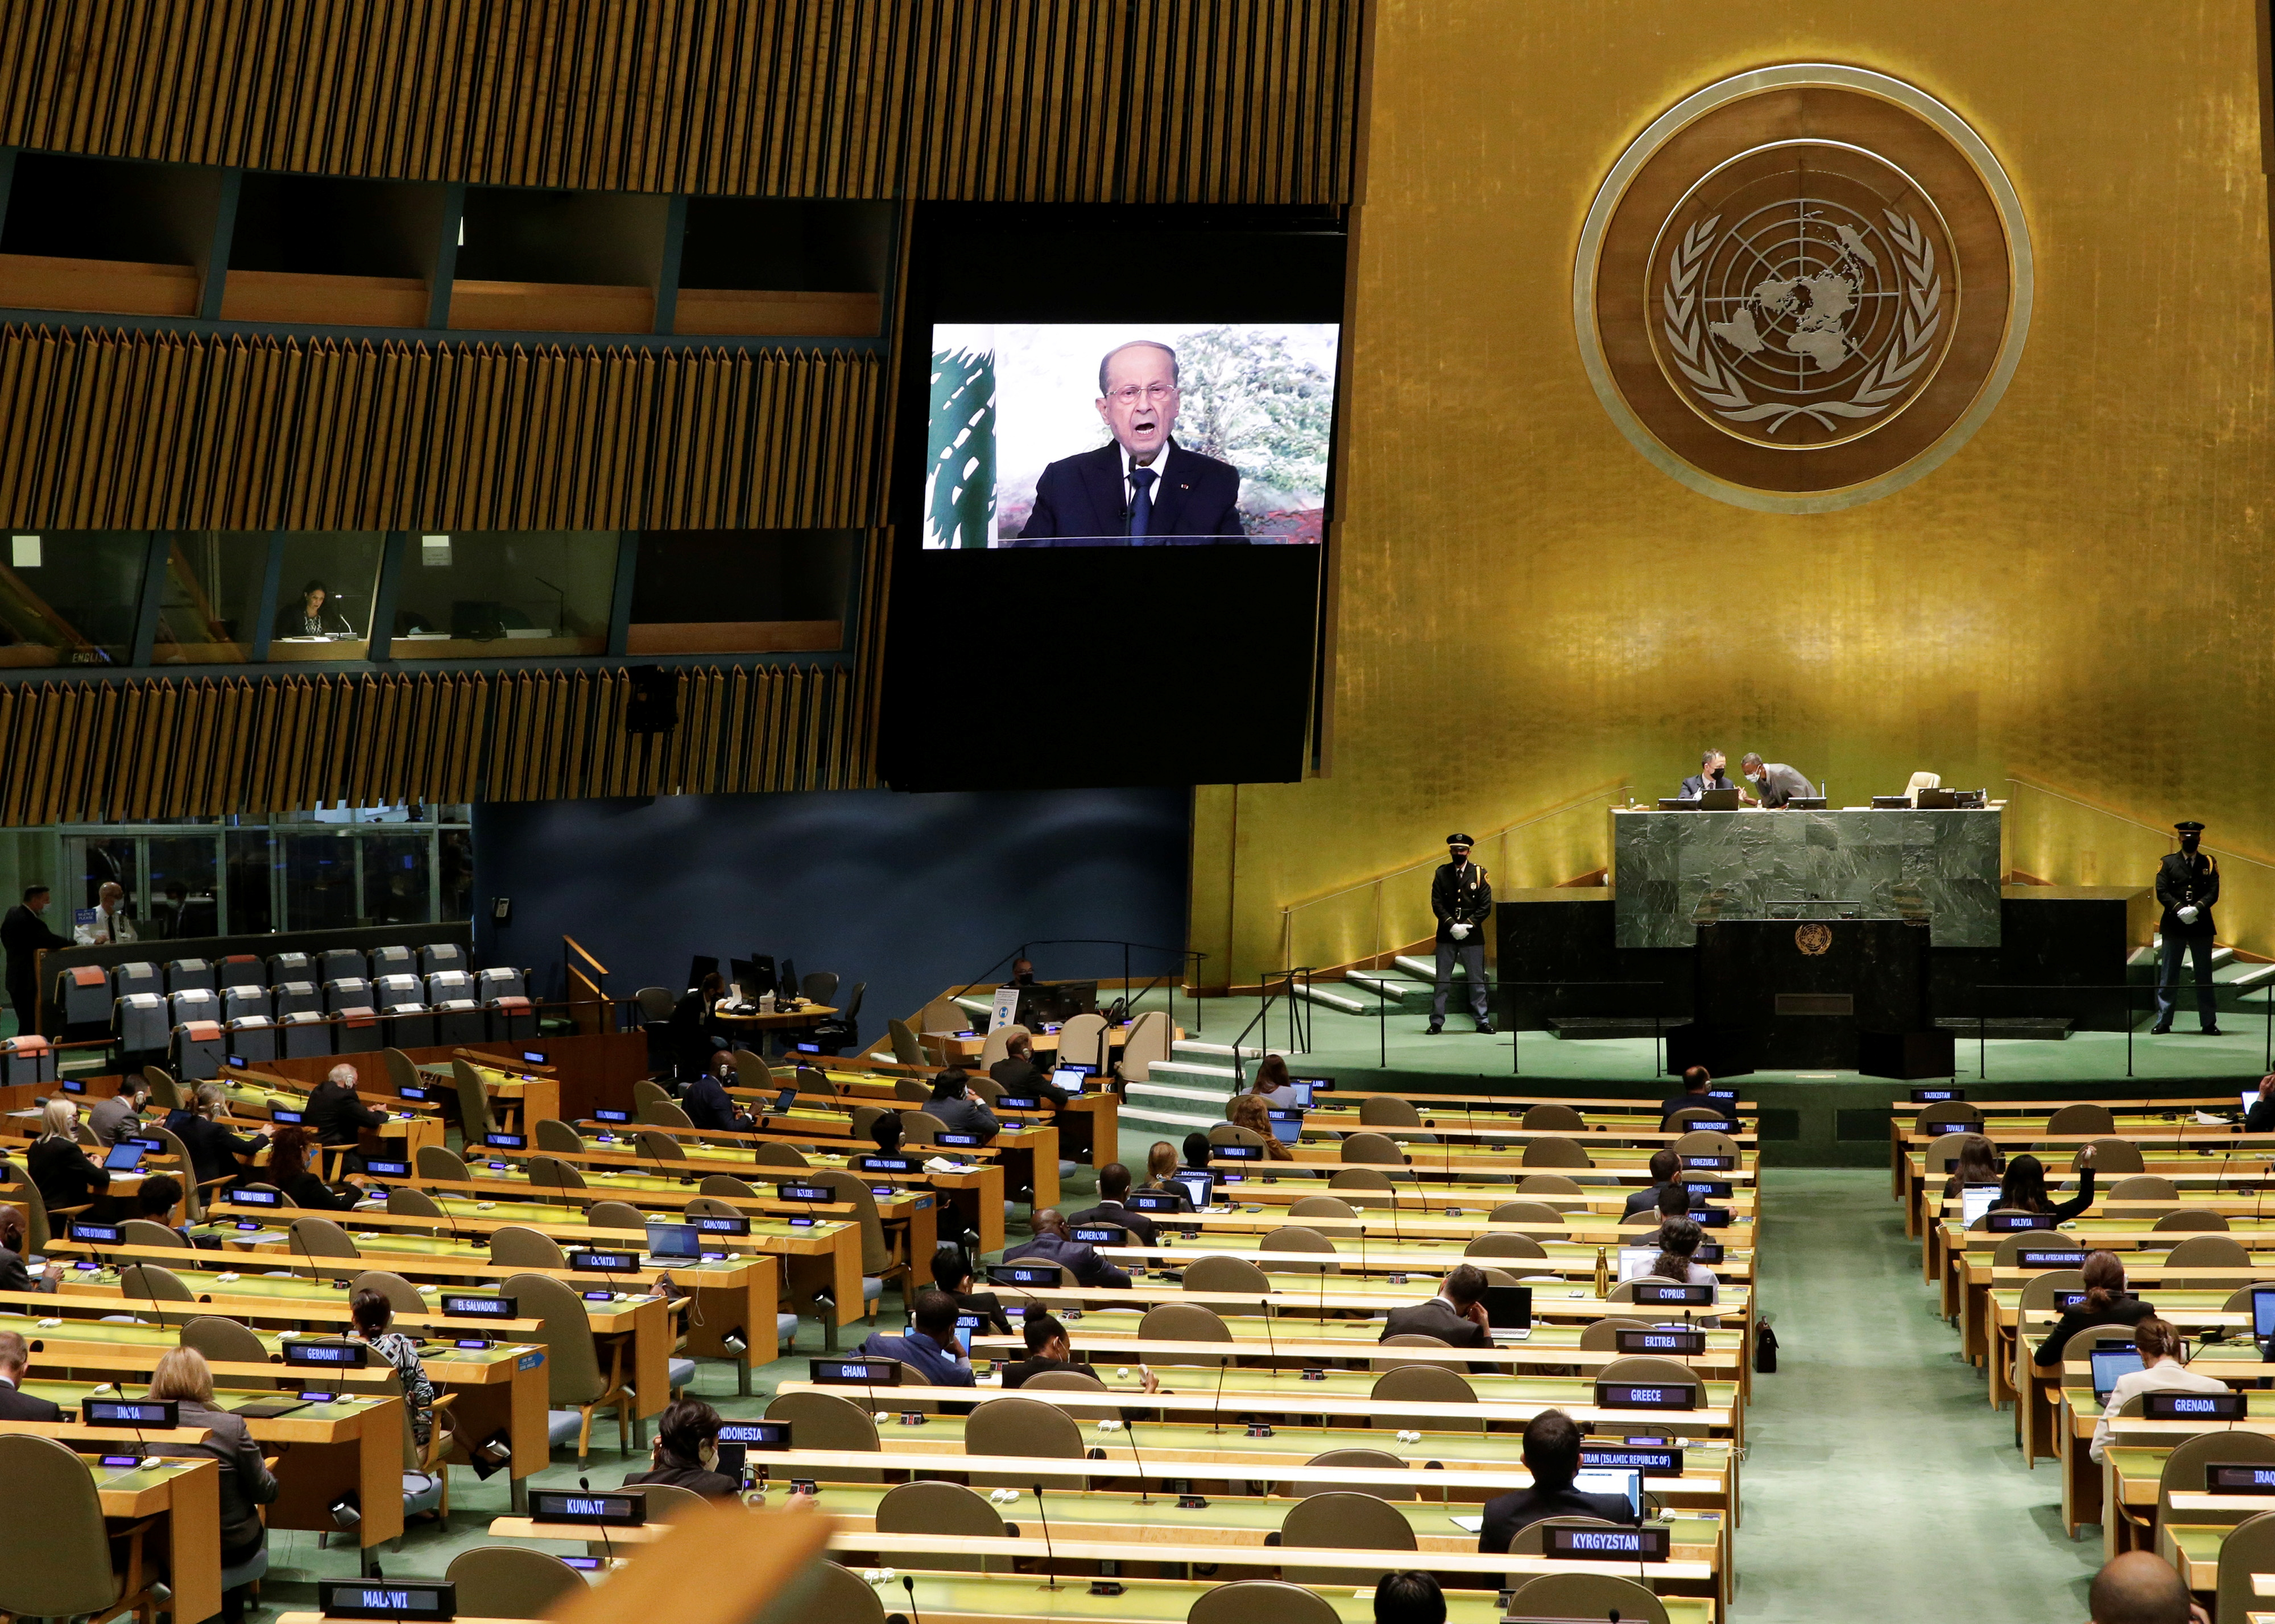 Lebanon's President Michel Aoun delivers a pre-recorded speech at the UN General Assembly 76th session General Debate in UN General Assembly Hall at the United Nations Headquarters in New York City, New York, U.S., September 24, 2021. John Angelillo/Pool via REUTERS